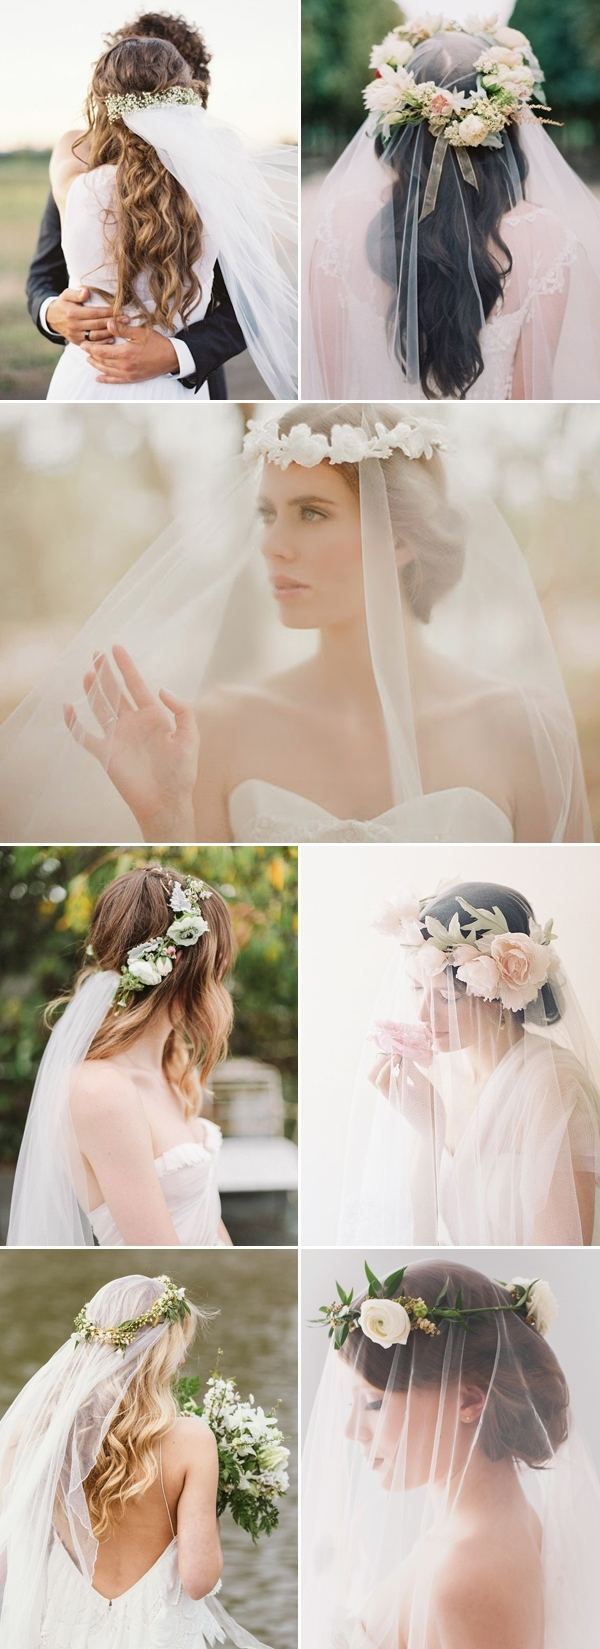 Deer Pearl Flowers Inside Most Popular Wedding Hairstyles With Veil And Flower (View 14 of 15)